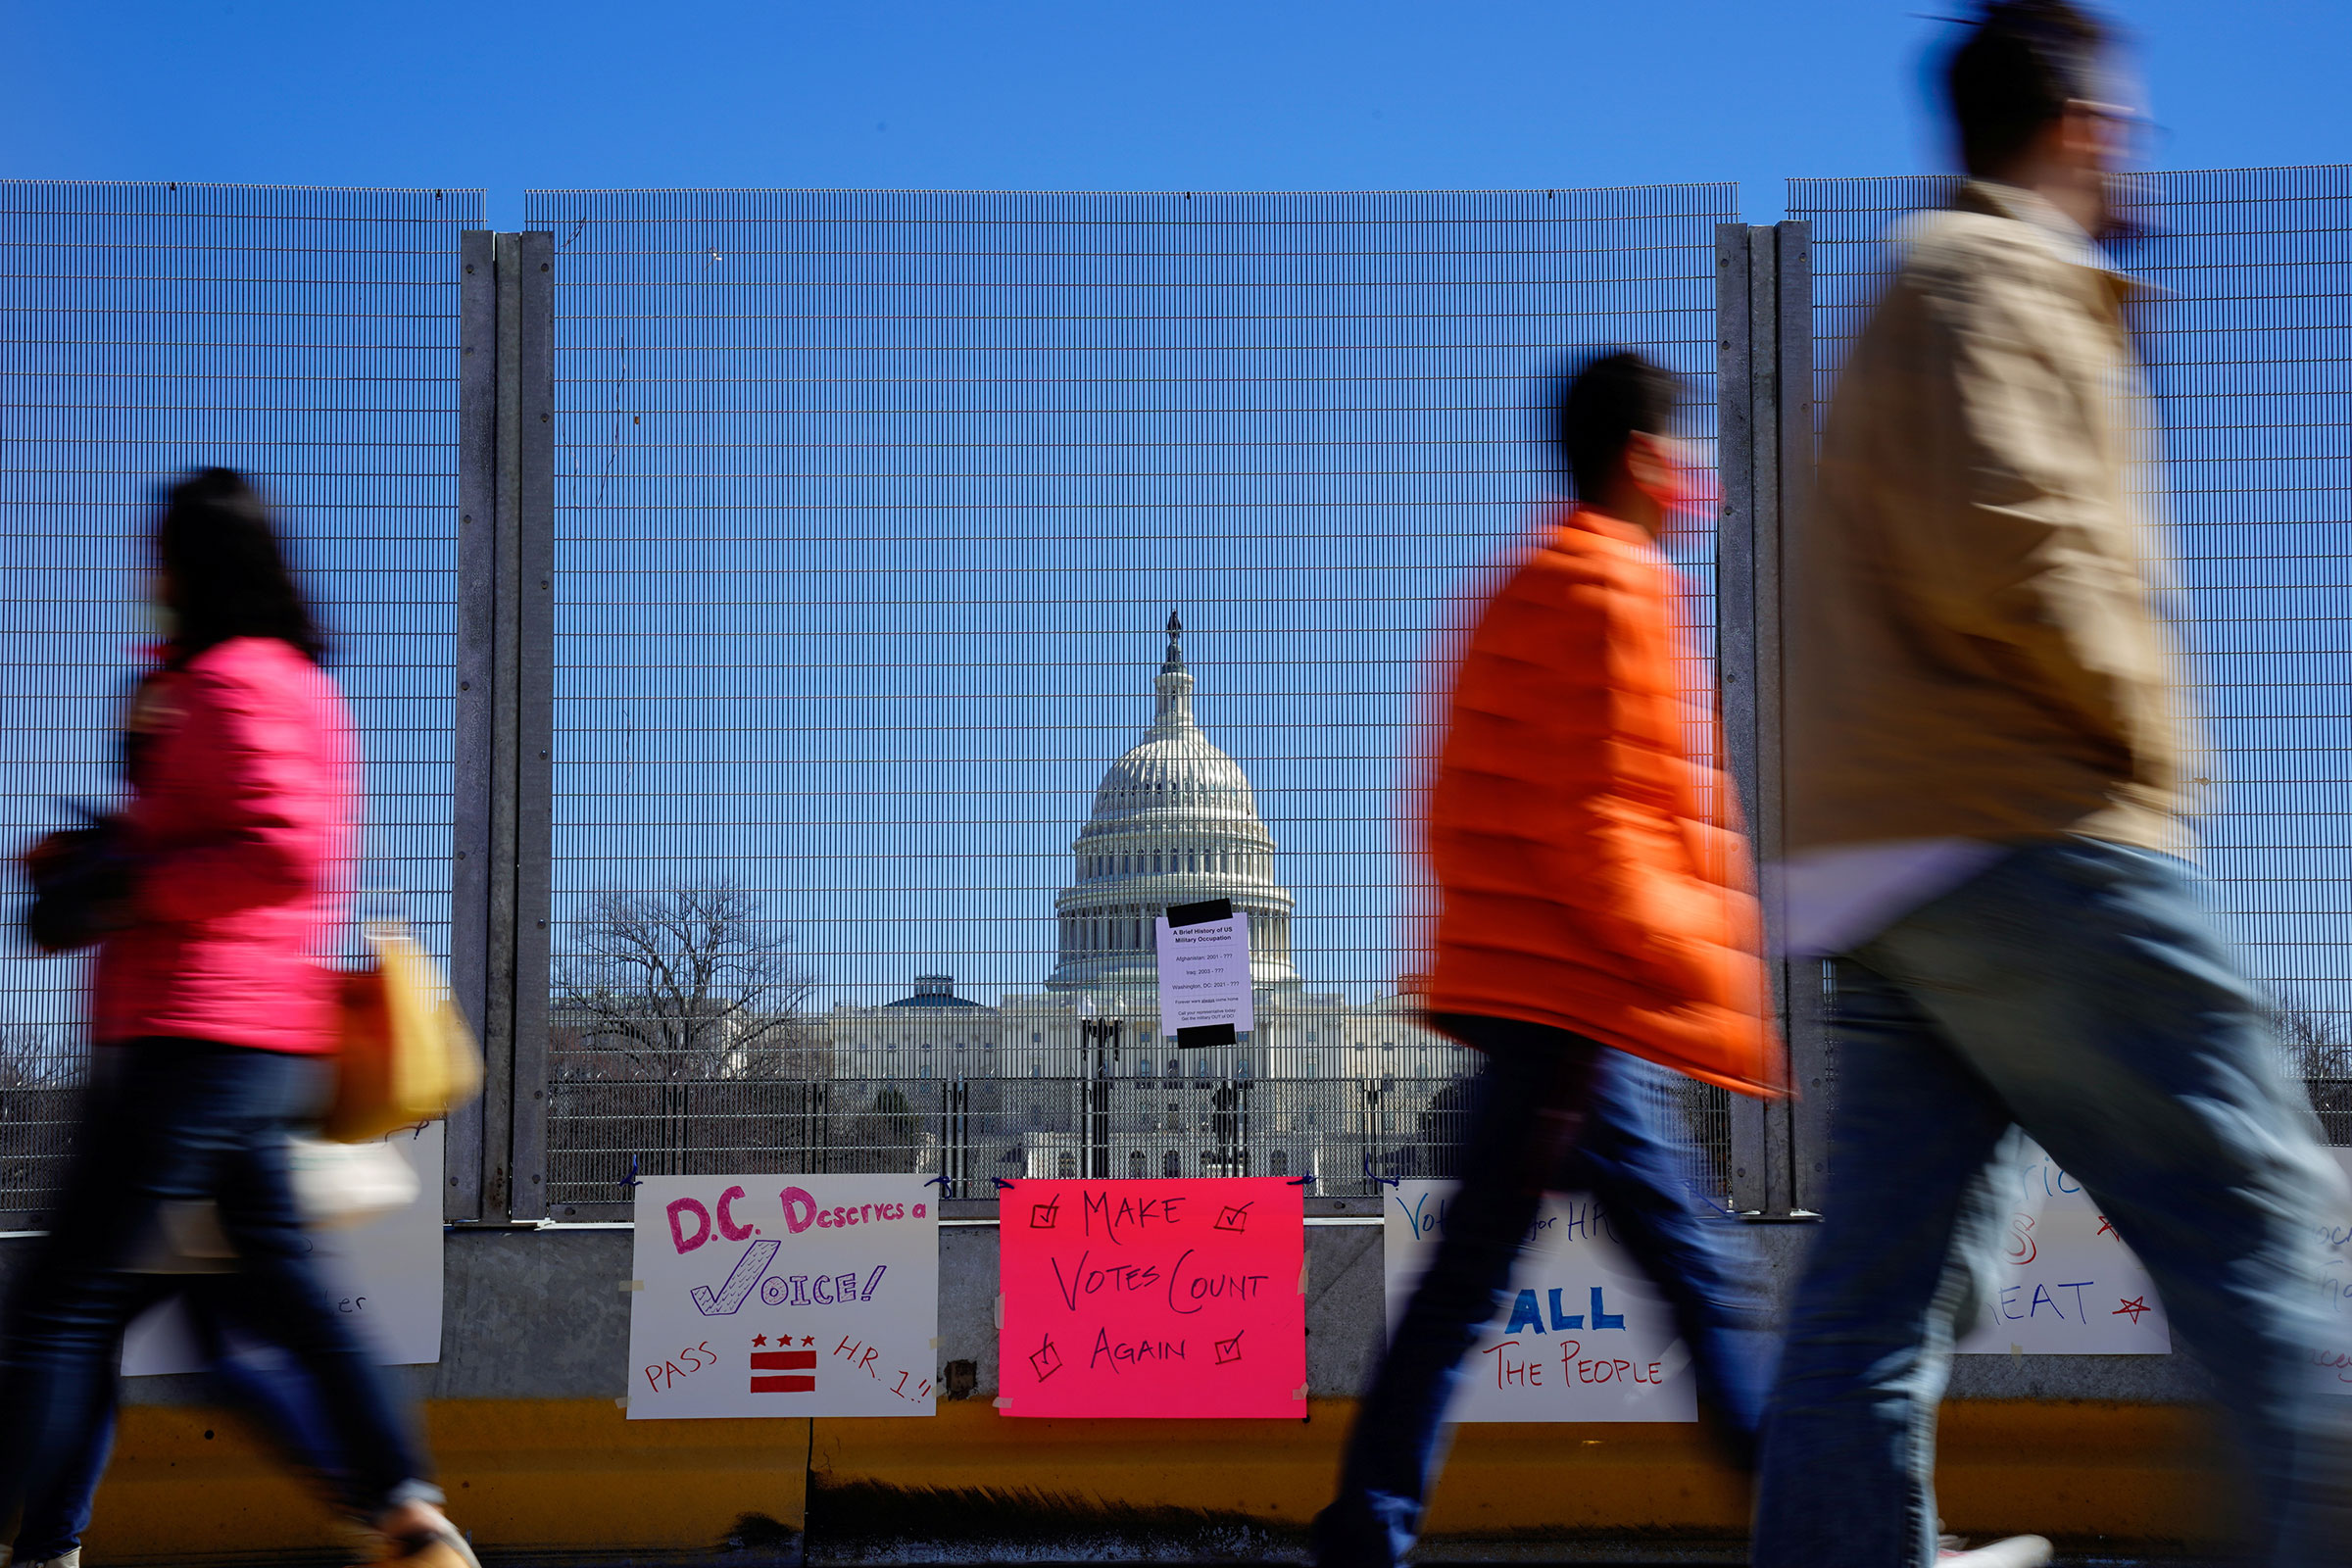 People walk past signs hung on a security fence in support of expanded voting rights near the Capitol in Washington, on March 7, 2021.